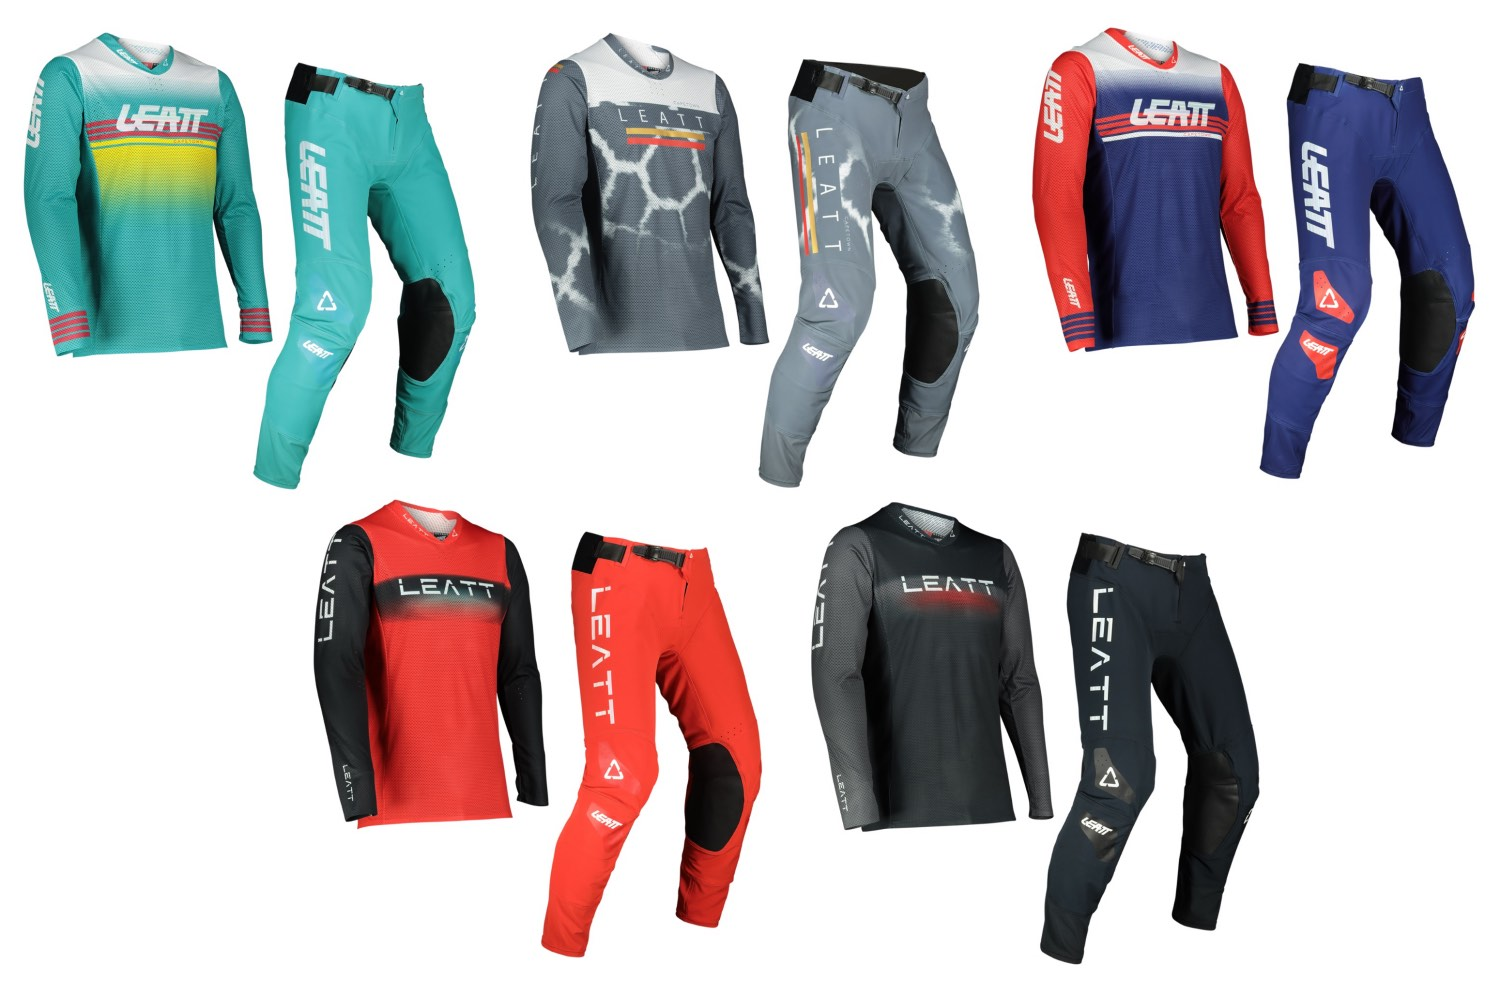 2022 Leatt 5.5 Jersey and Pants options